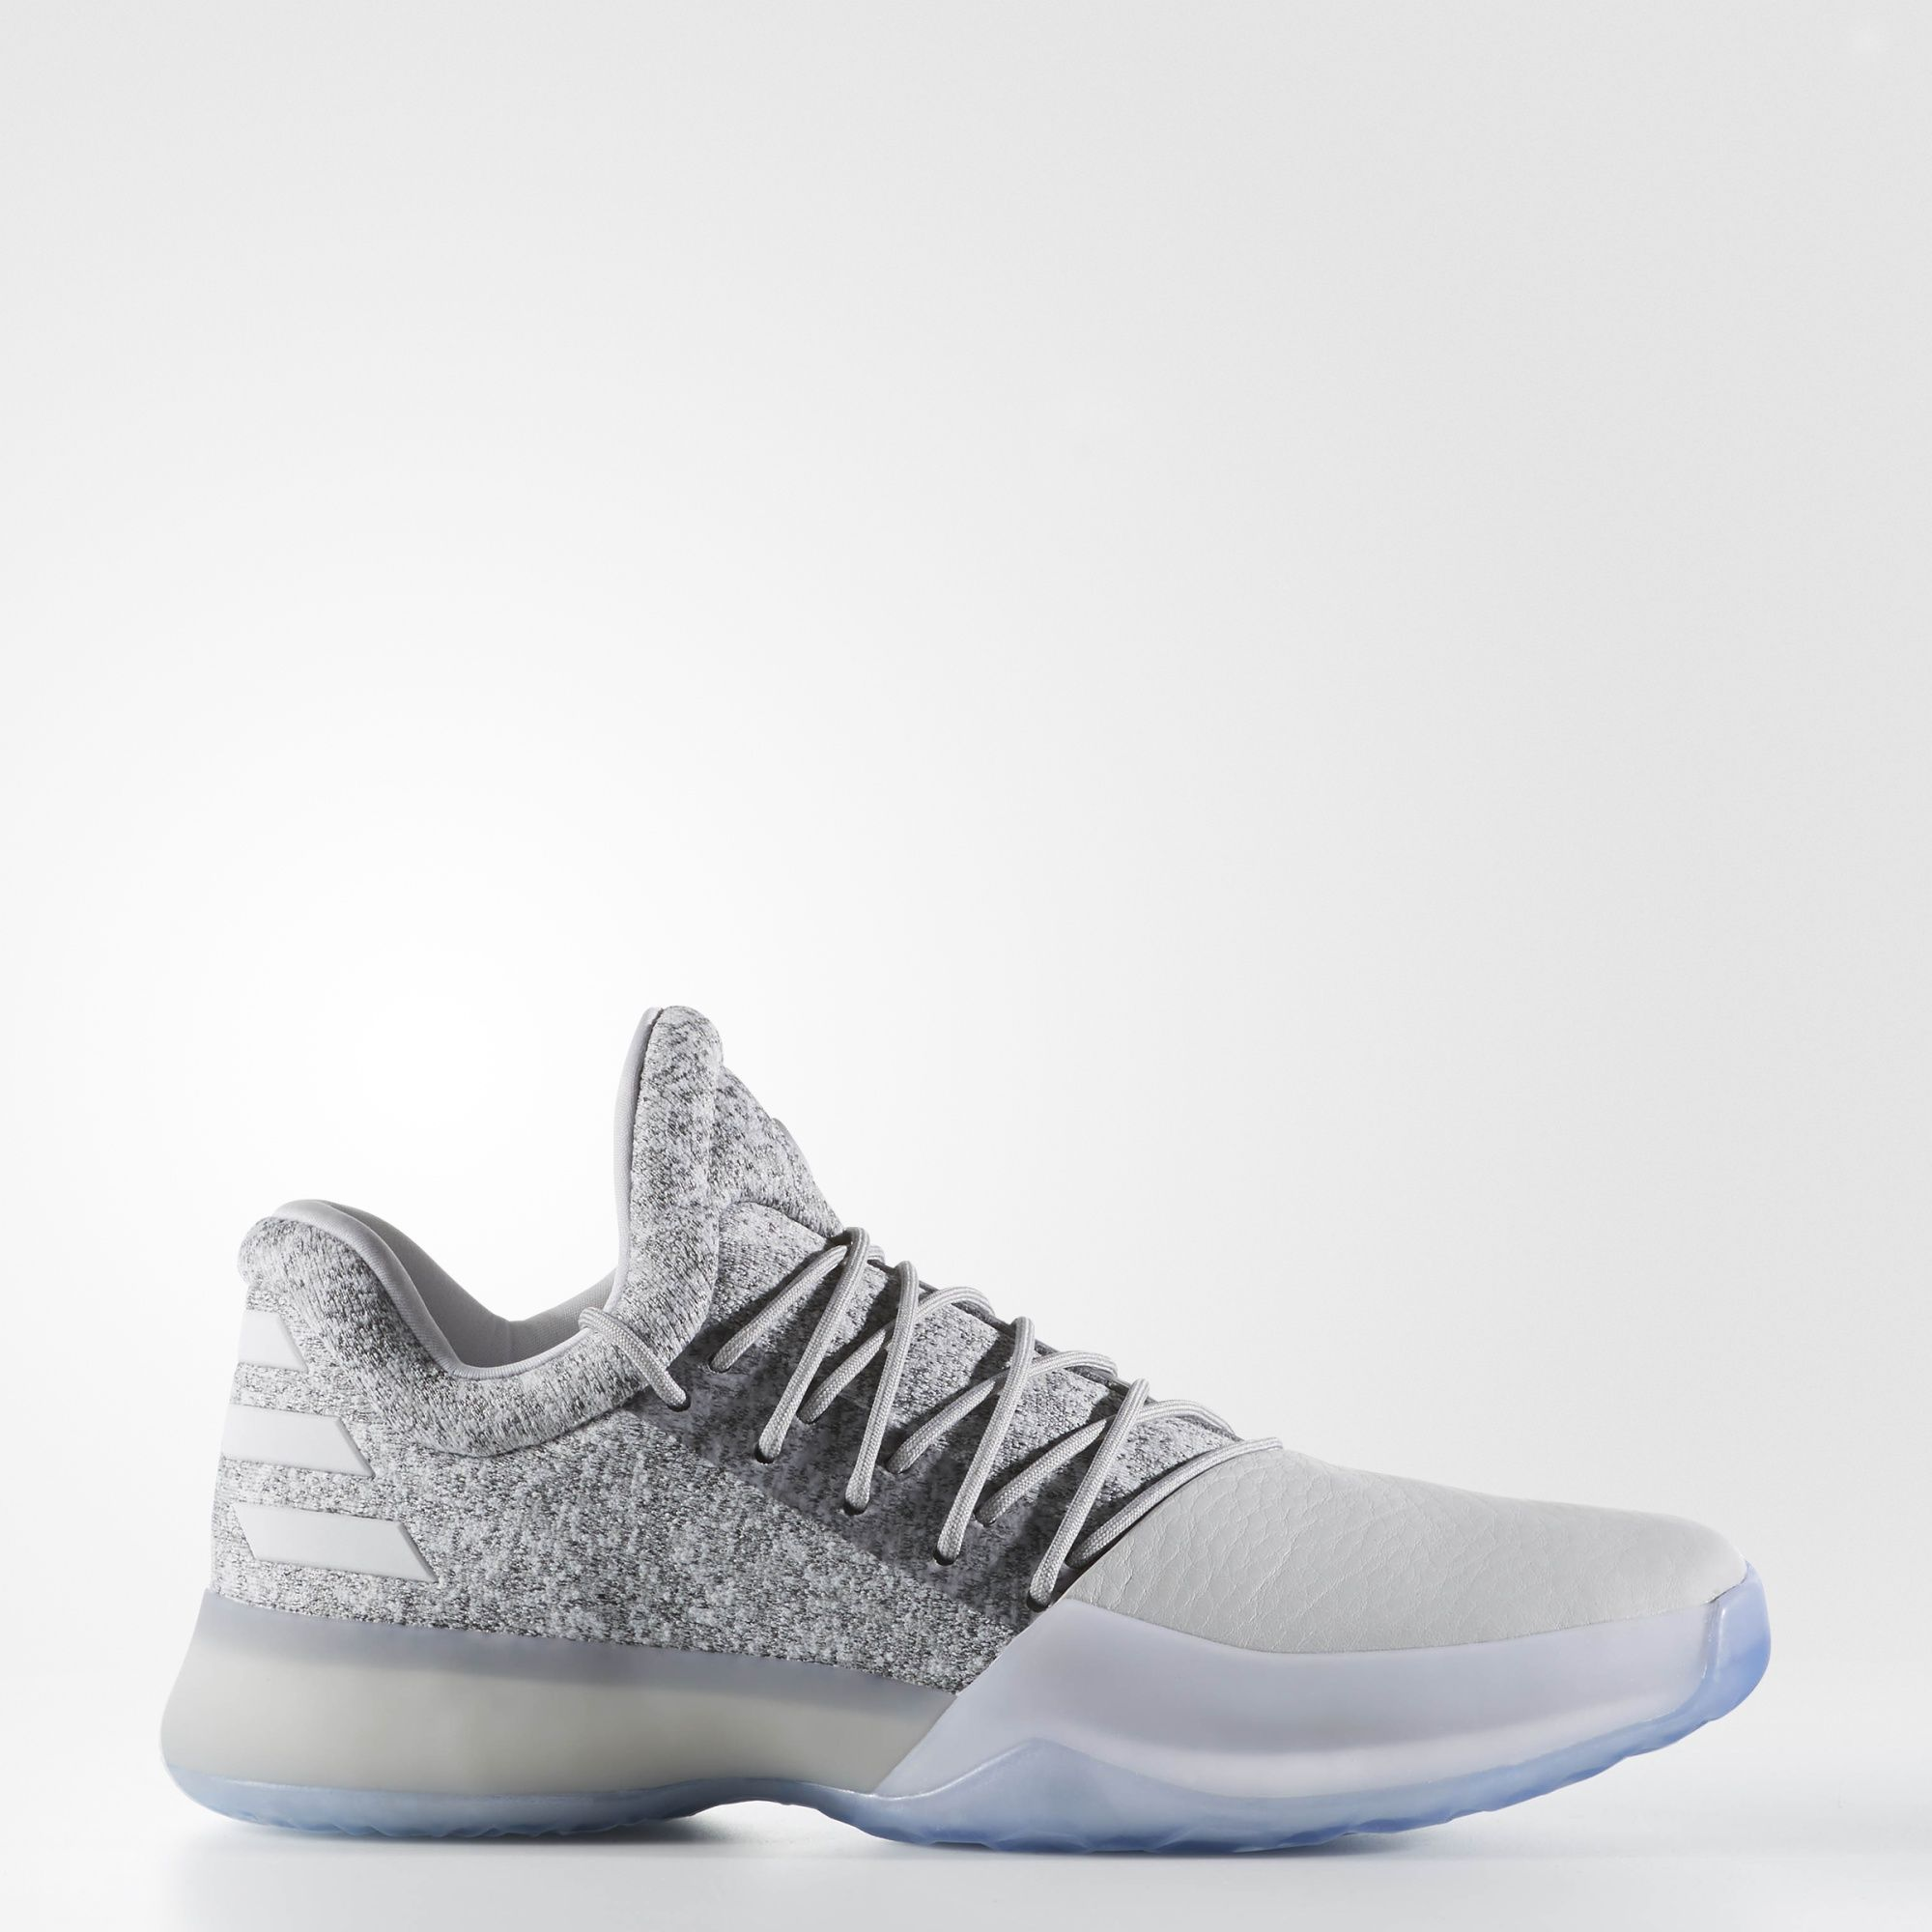 reputable site 22d41 3a190 adidas - Harden Vol. 1 Shoes